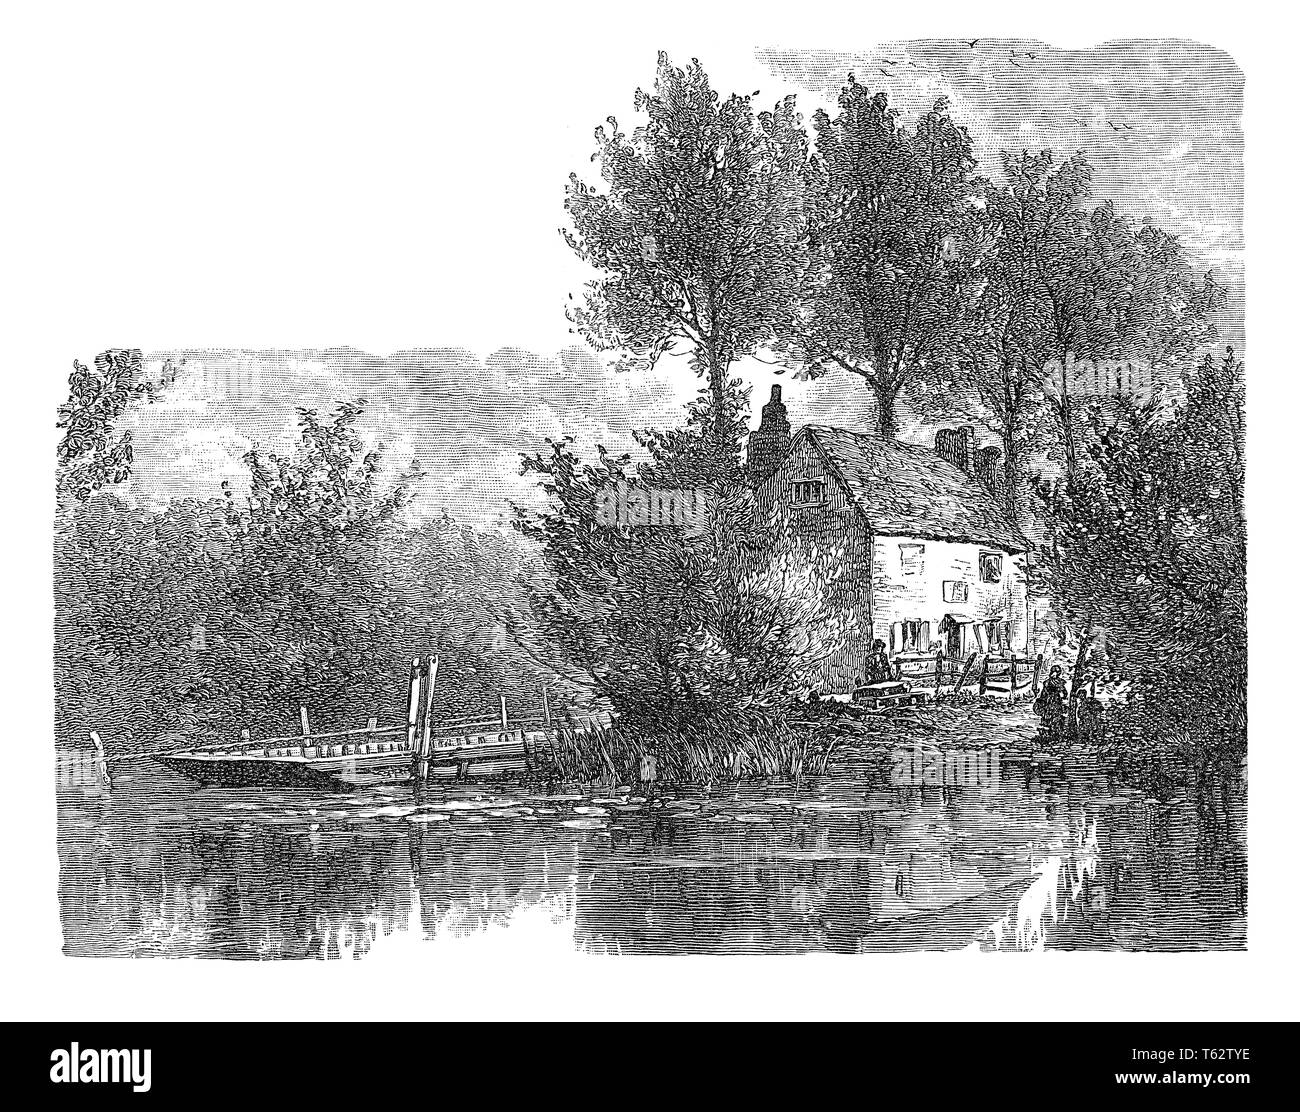 1891 engraving of the ferry at Bablock Hythe on the River Thames in Oxfordshire. - Stock Image